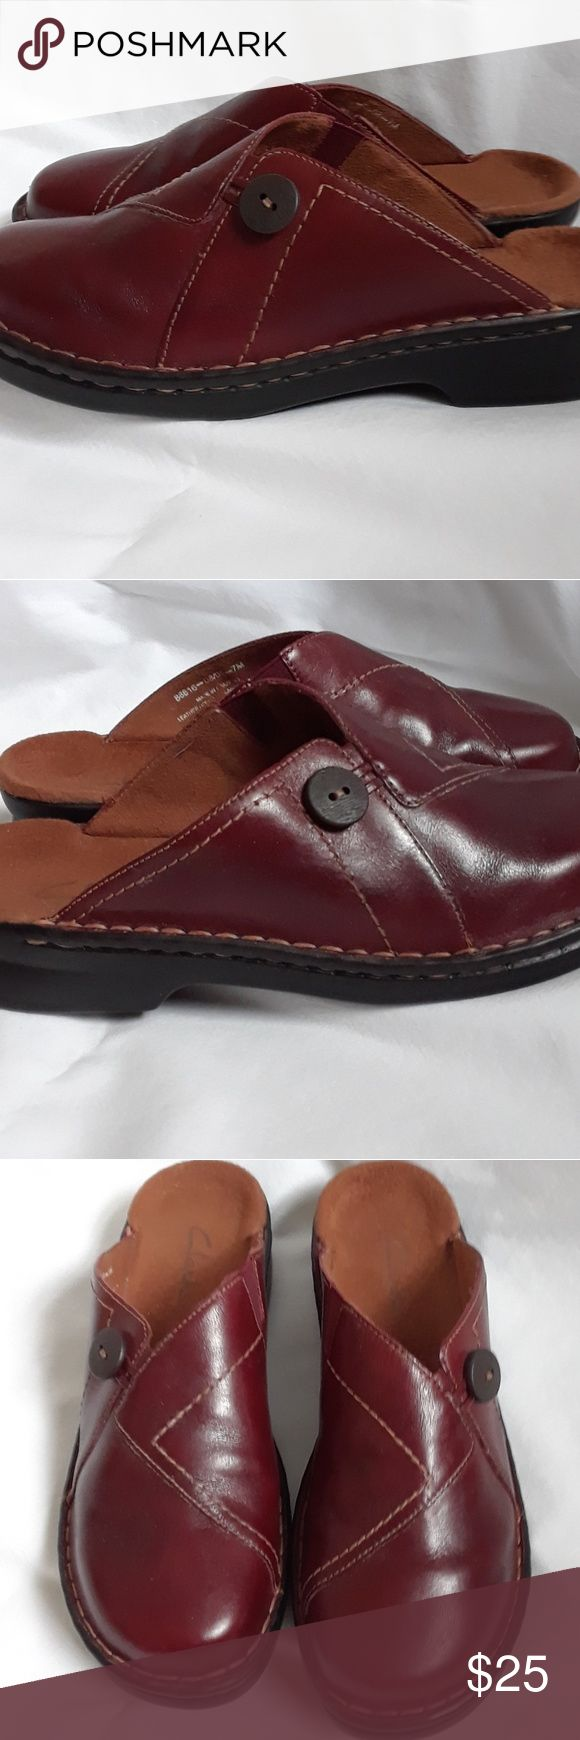 Clark's Mule/Clog NWOT New without tag. Leather upper, man-made sole. Almost wine brown in color. Clarks Shoes Mules & Clogs